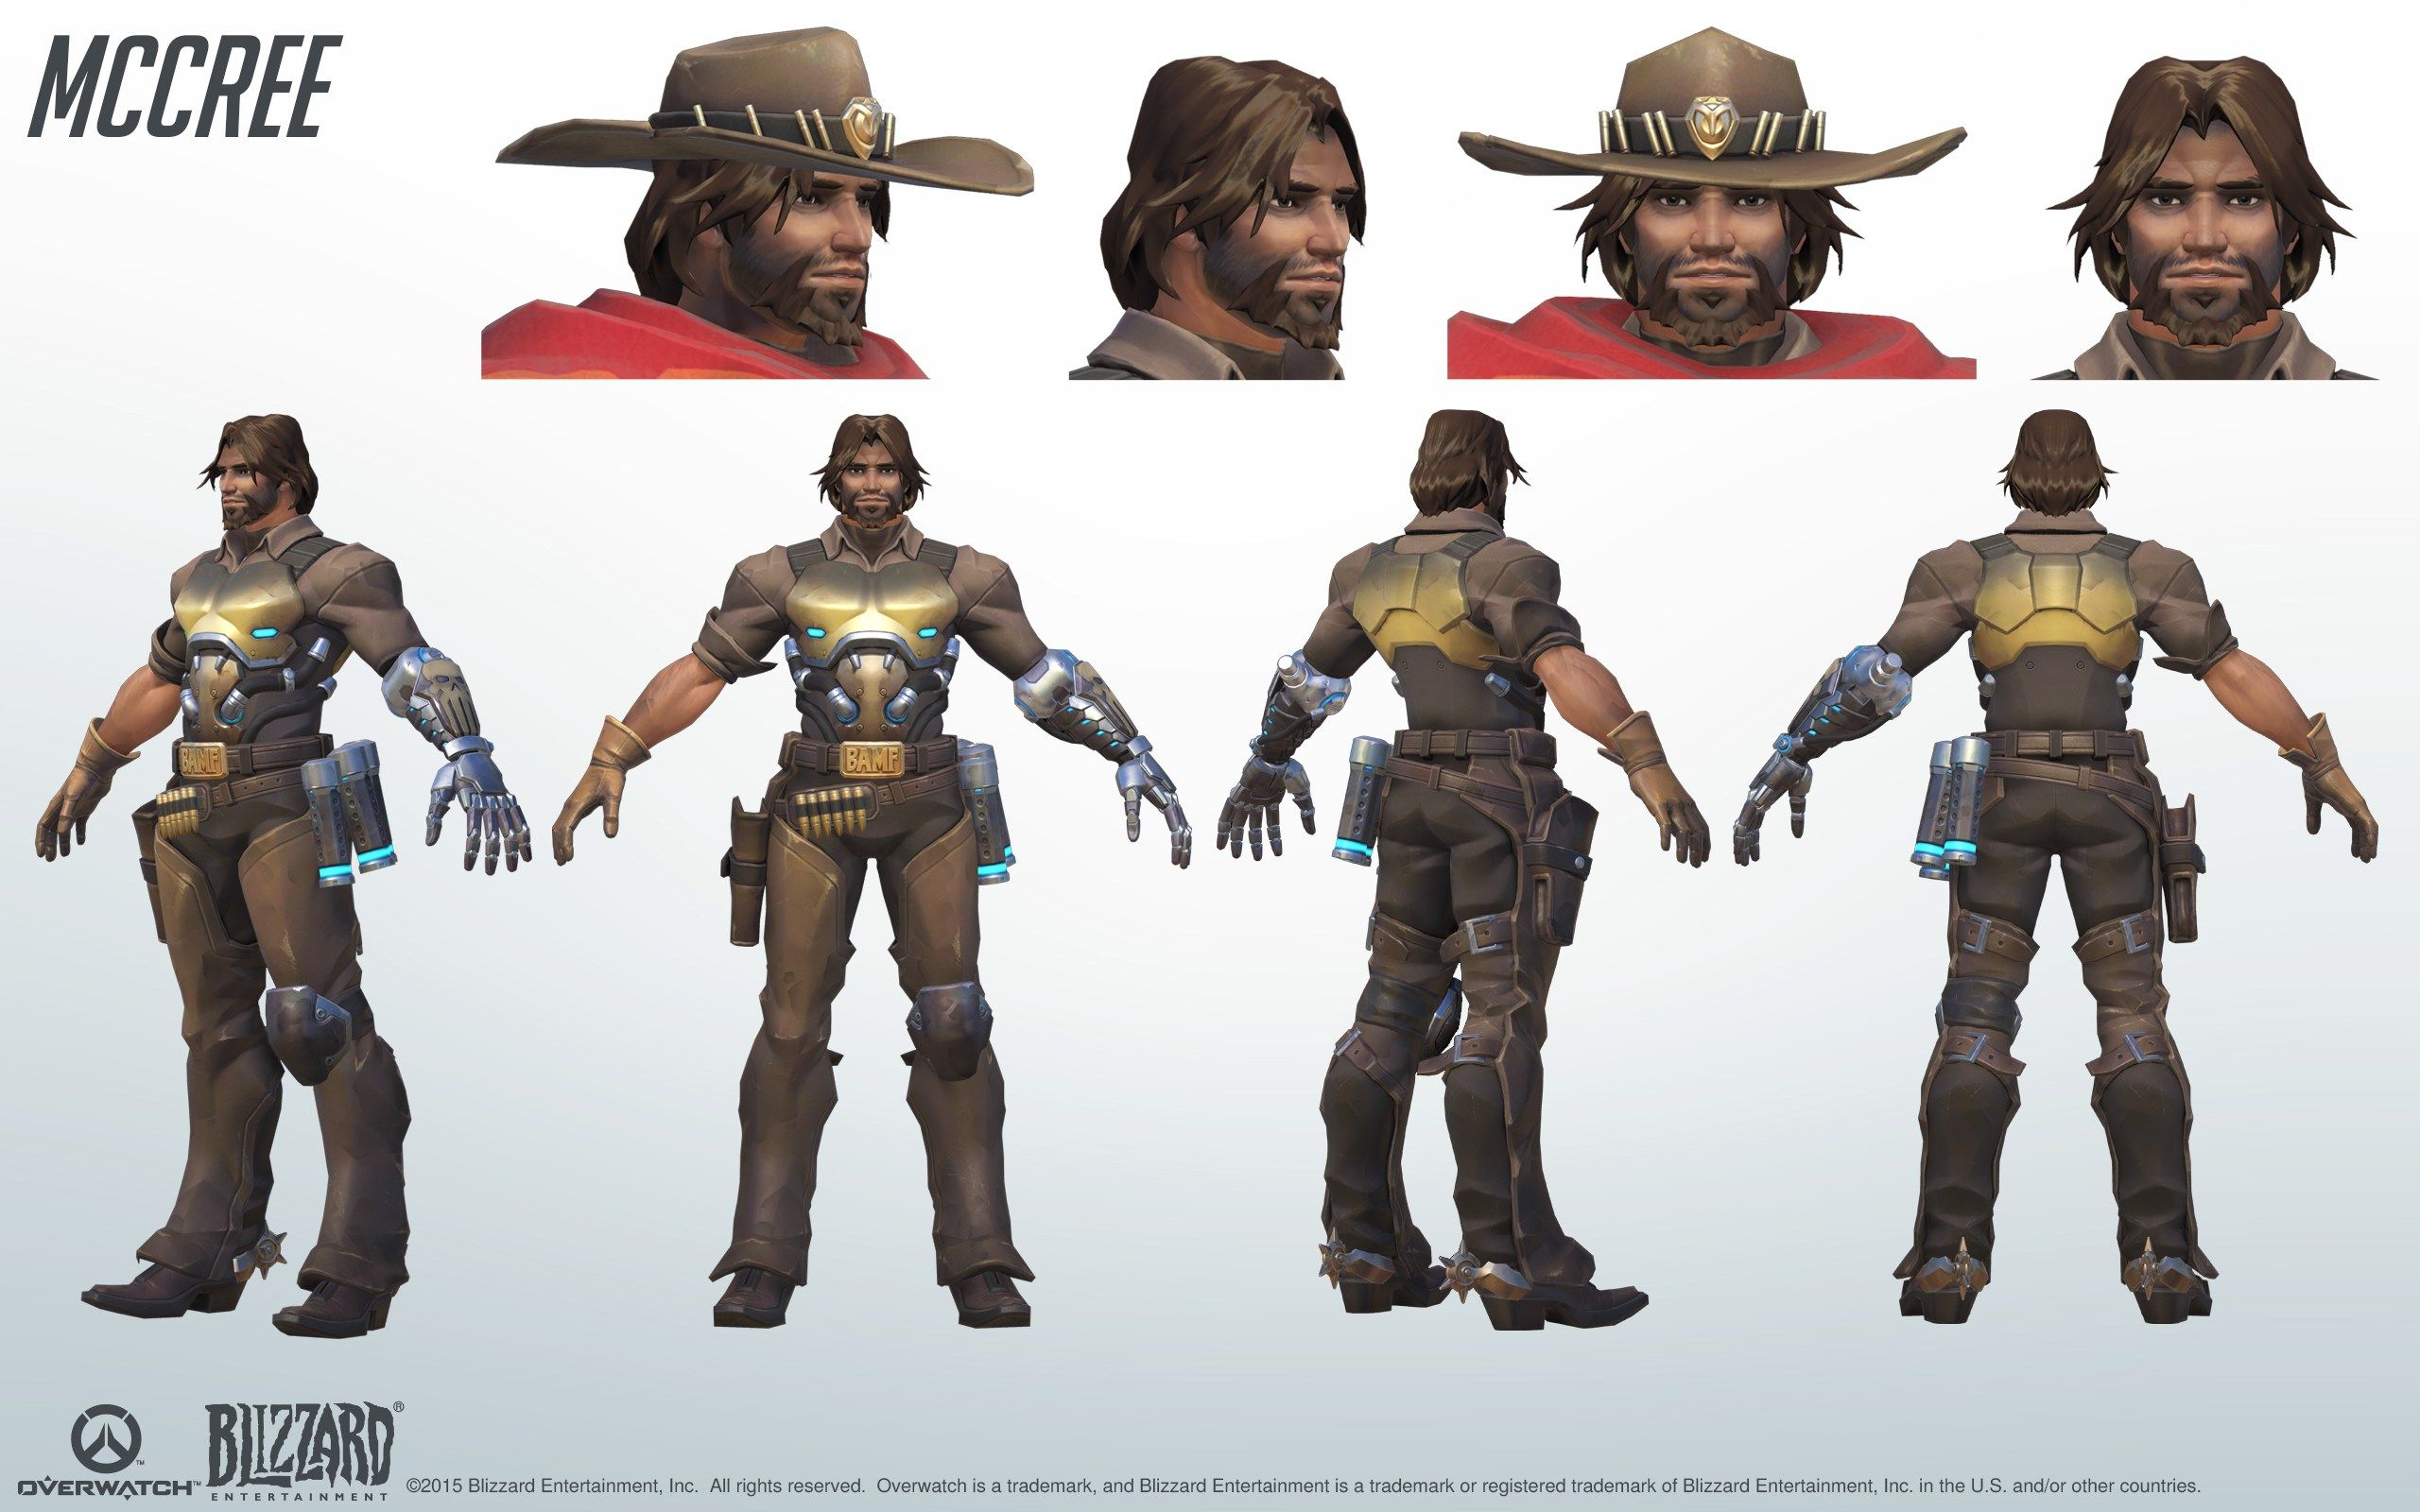 Character Design Overwatch : Mccree overwatch model sheet turnaround